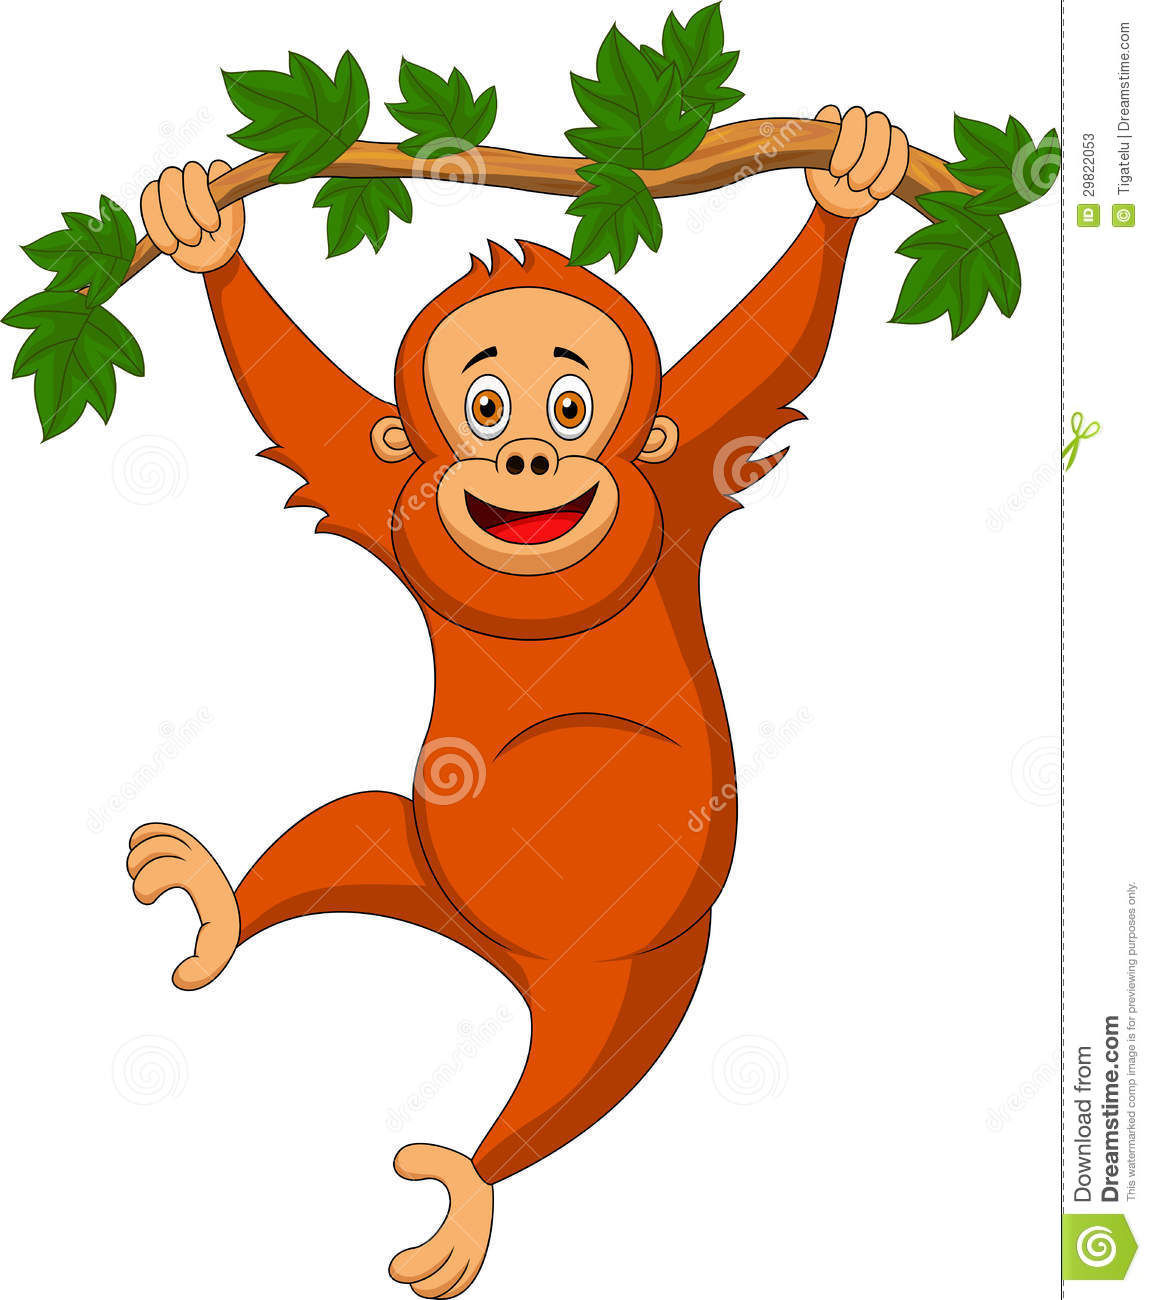 Cute Orangutan Cartoon Hanging On A Tree Branch Stock